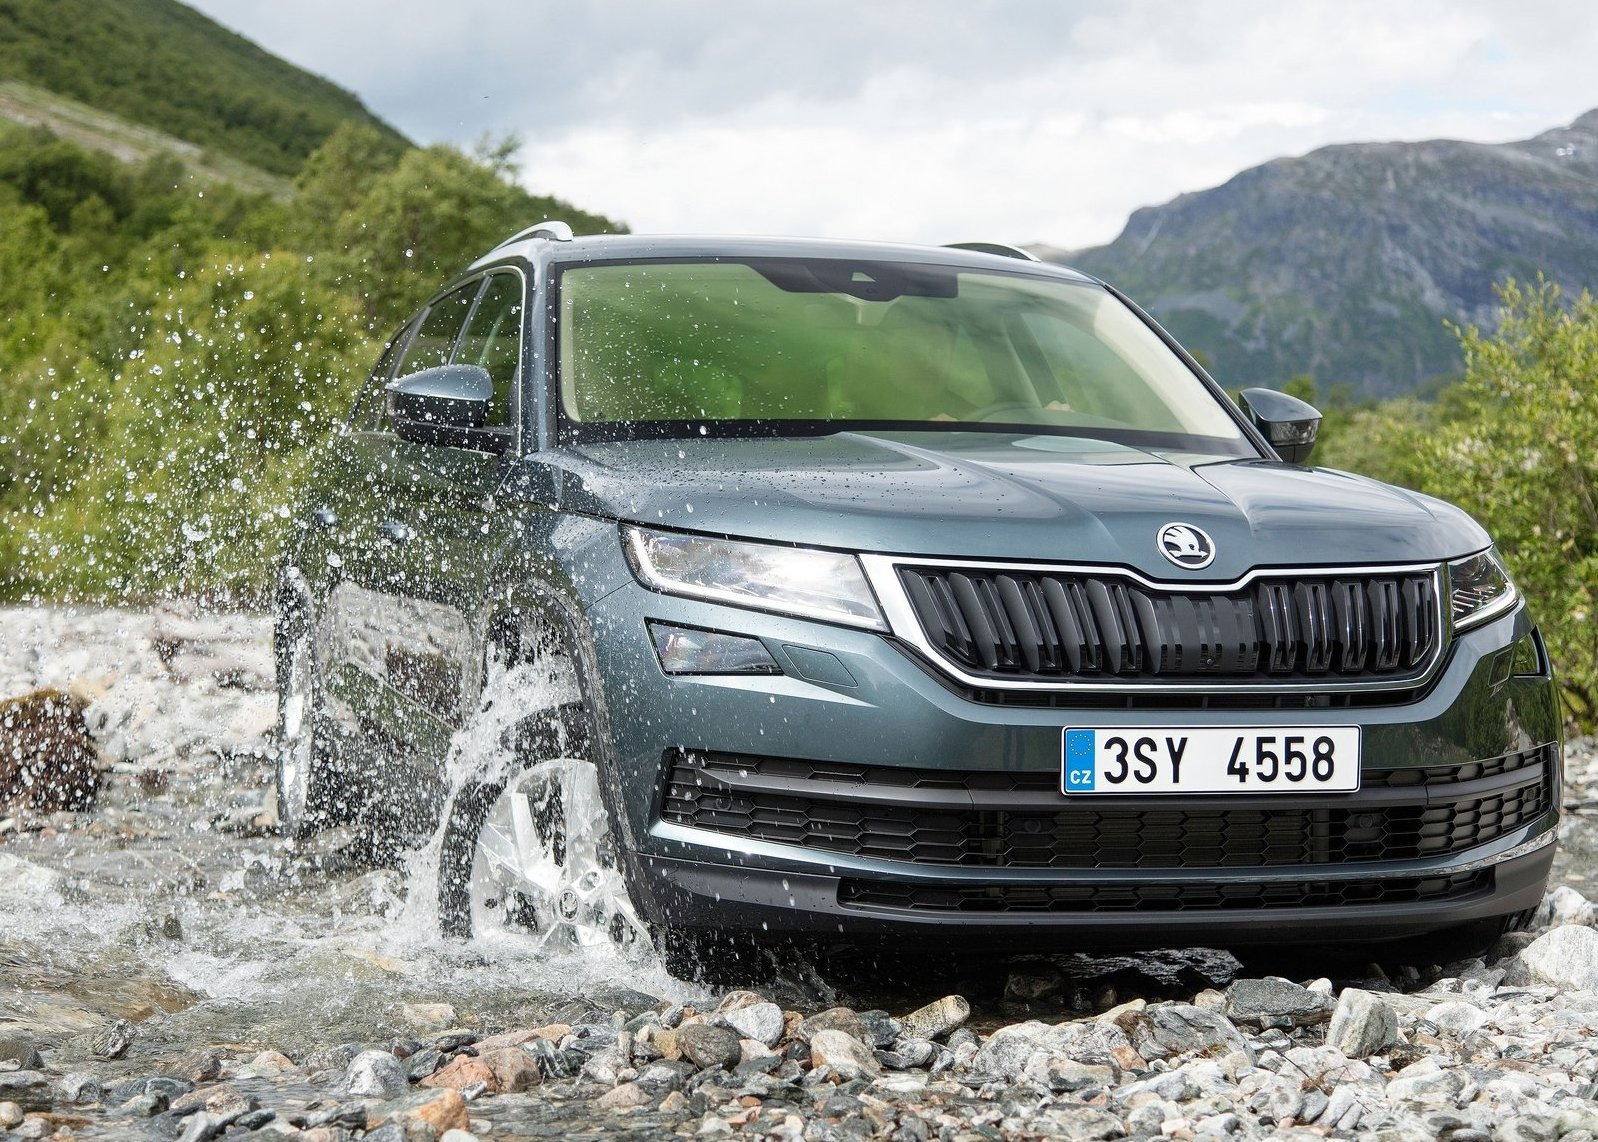 2017 skoda kodiaq suv dimensions new suv price. Black Bedroom Furniture Sets. Home Design Ideas